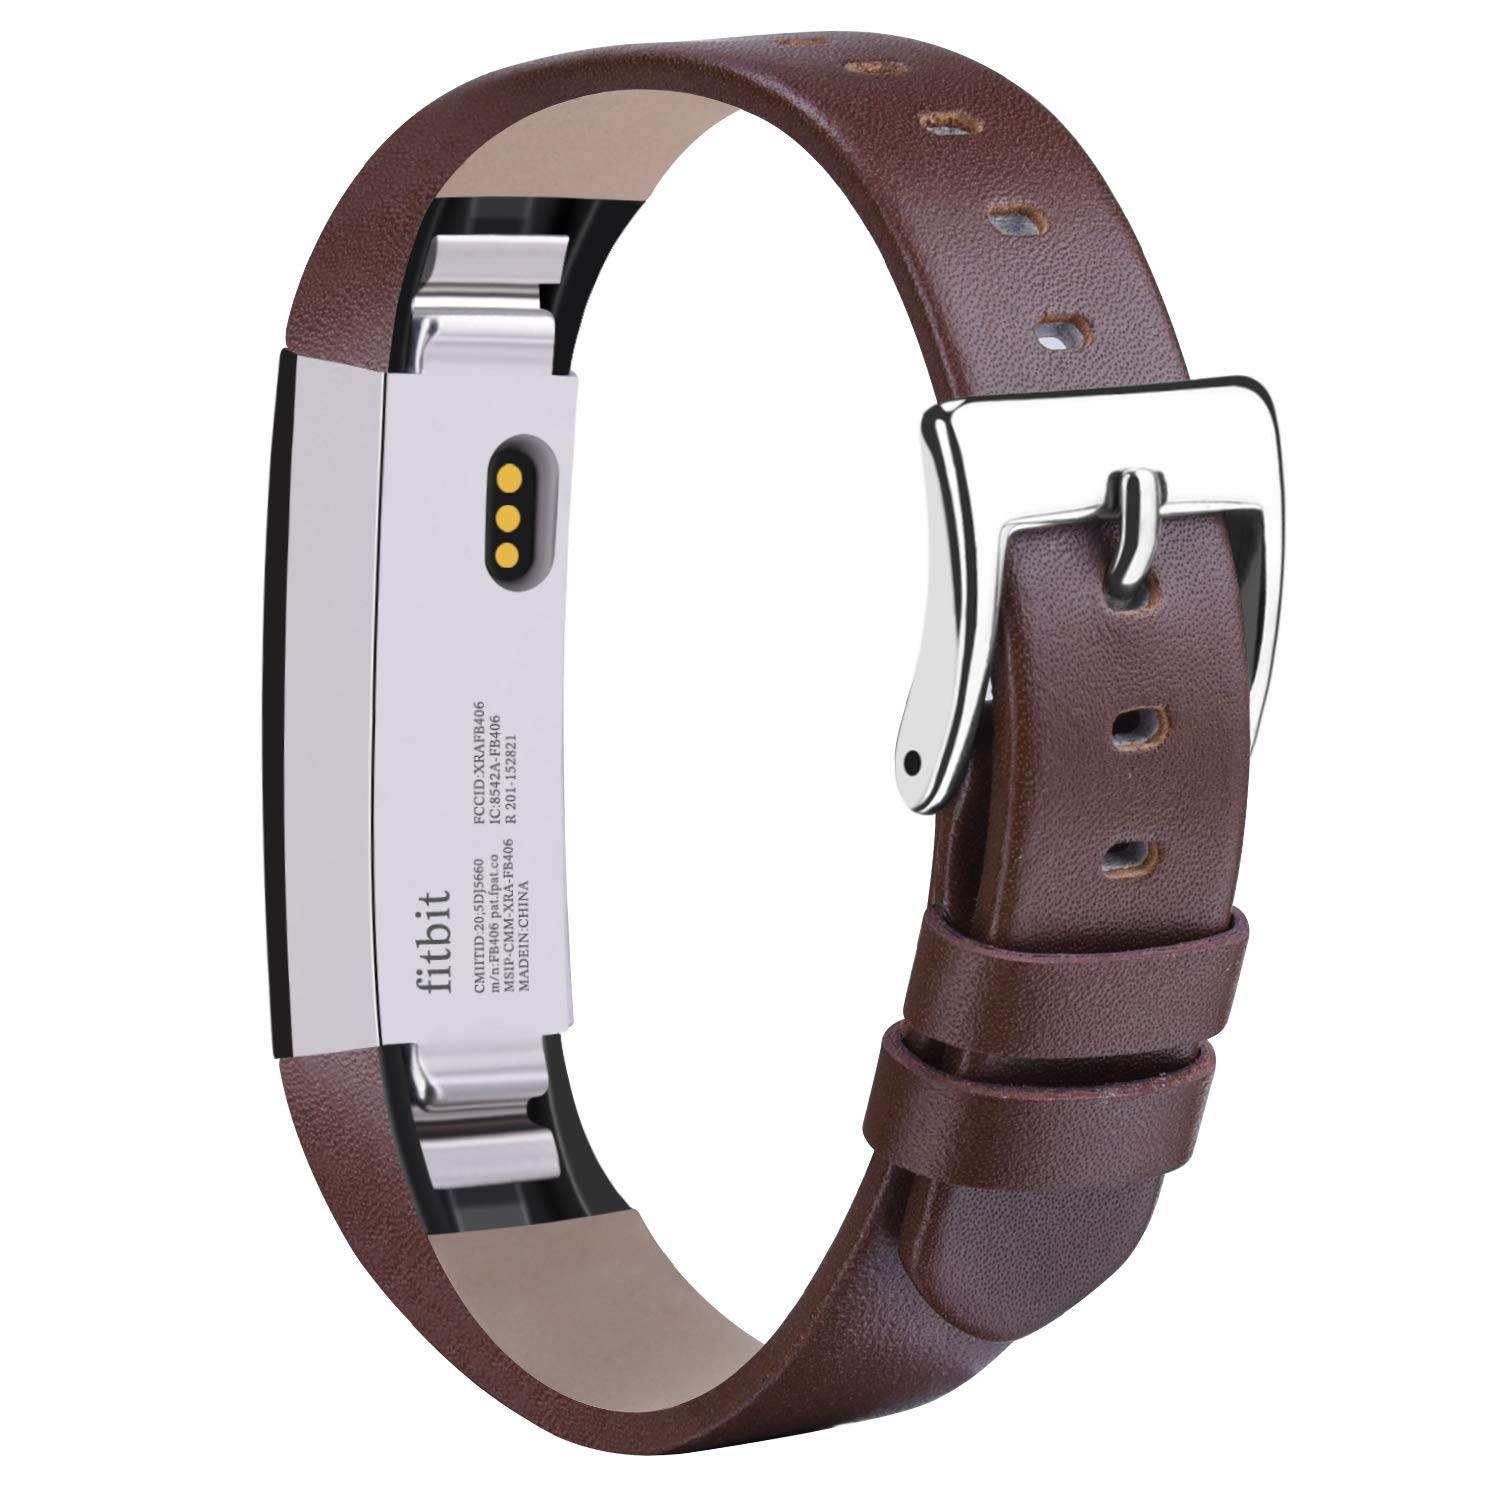 Vancle Compatible with for Fitbit Alta Bands Leather, Adjustable Replacement Accessories Fitbit Alta HR Bands for Women Men (3. Coffee)